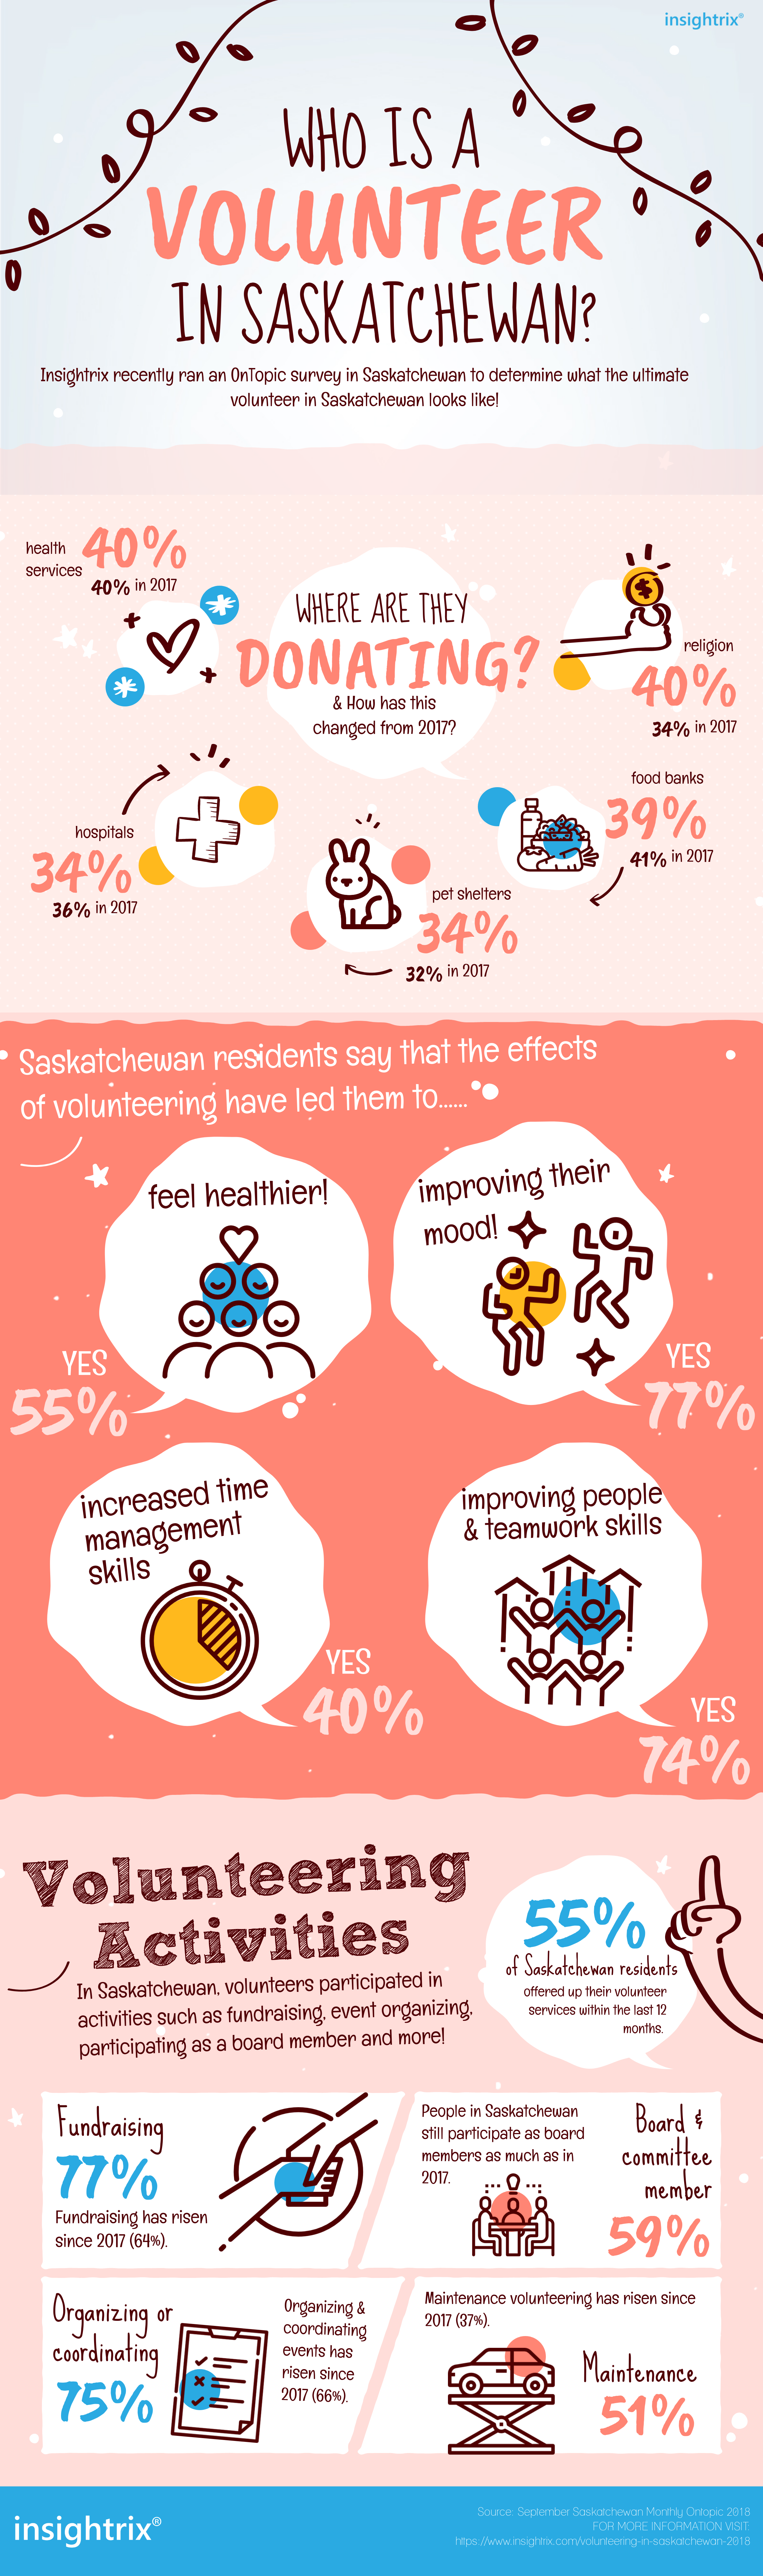 Volunteer & Charitable Activity in Saskatchewan, Insightrix Research, Market Research, infographic